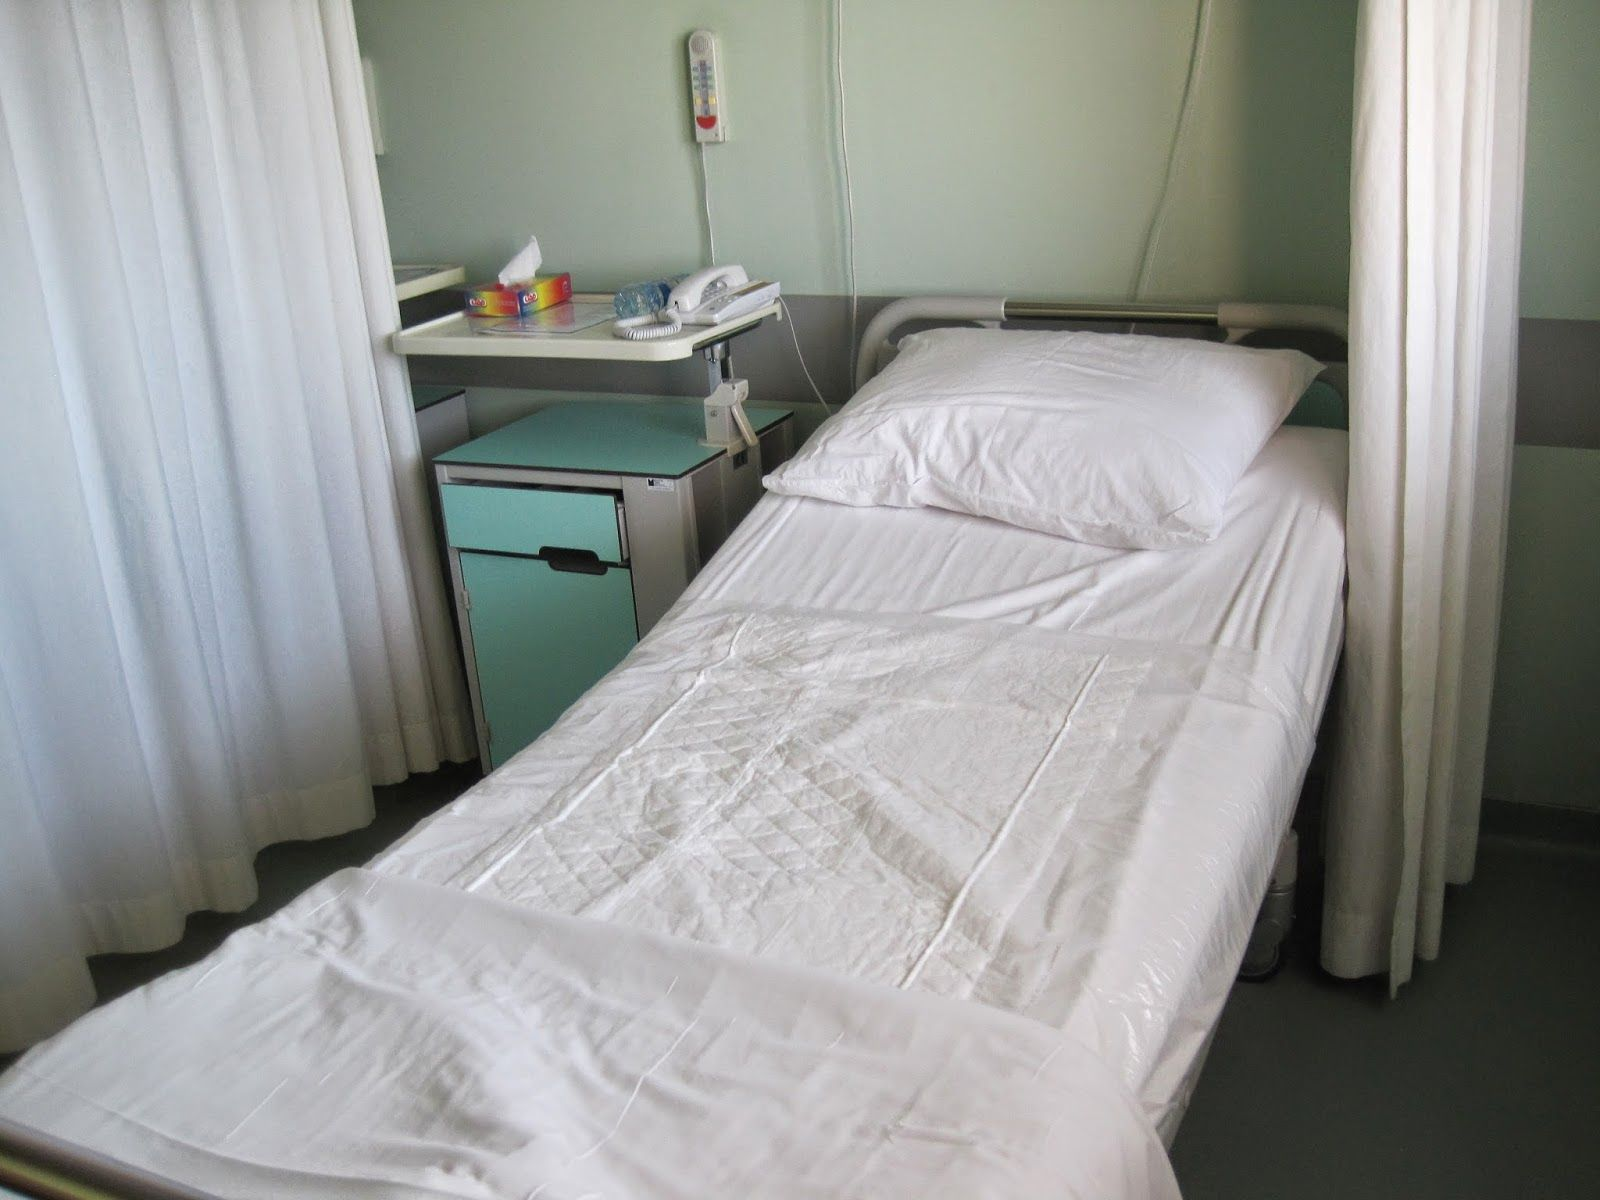 Hospital room pictures from bed view - Hospital Room Google Search